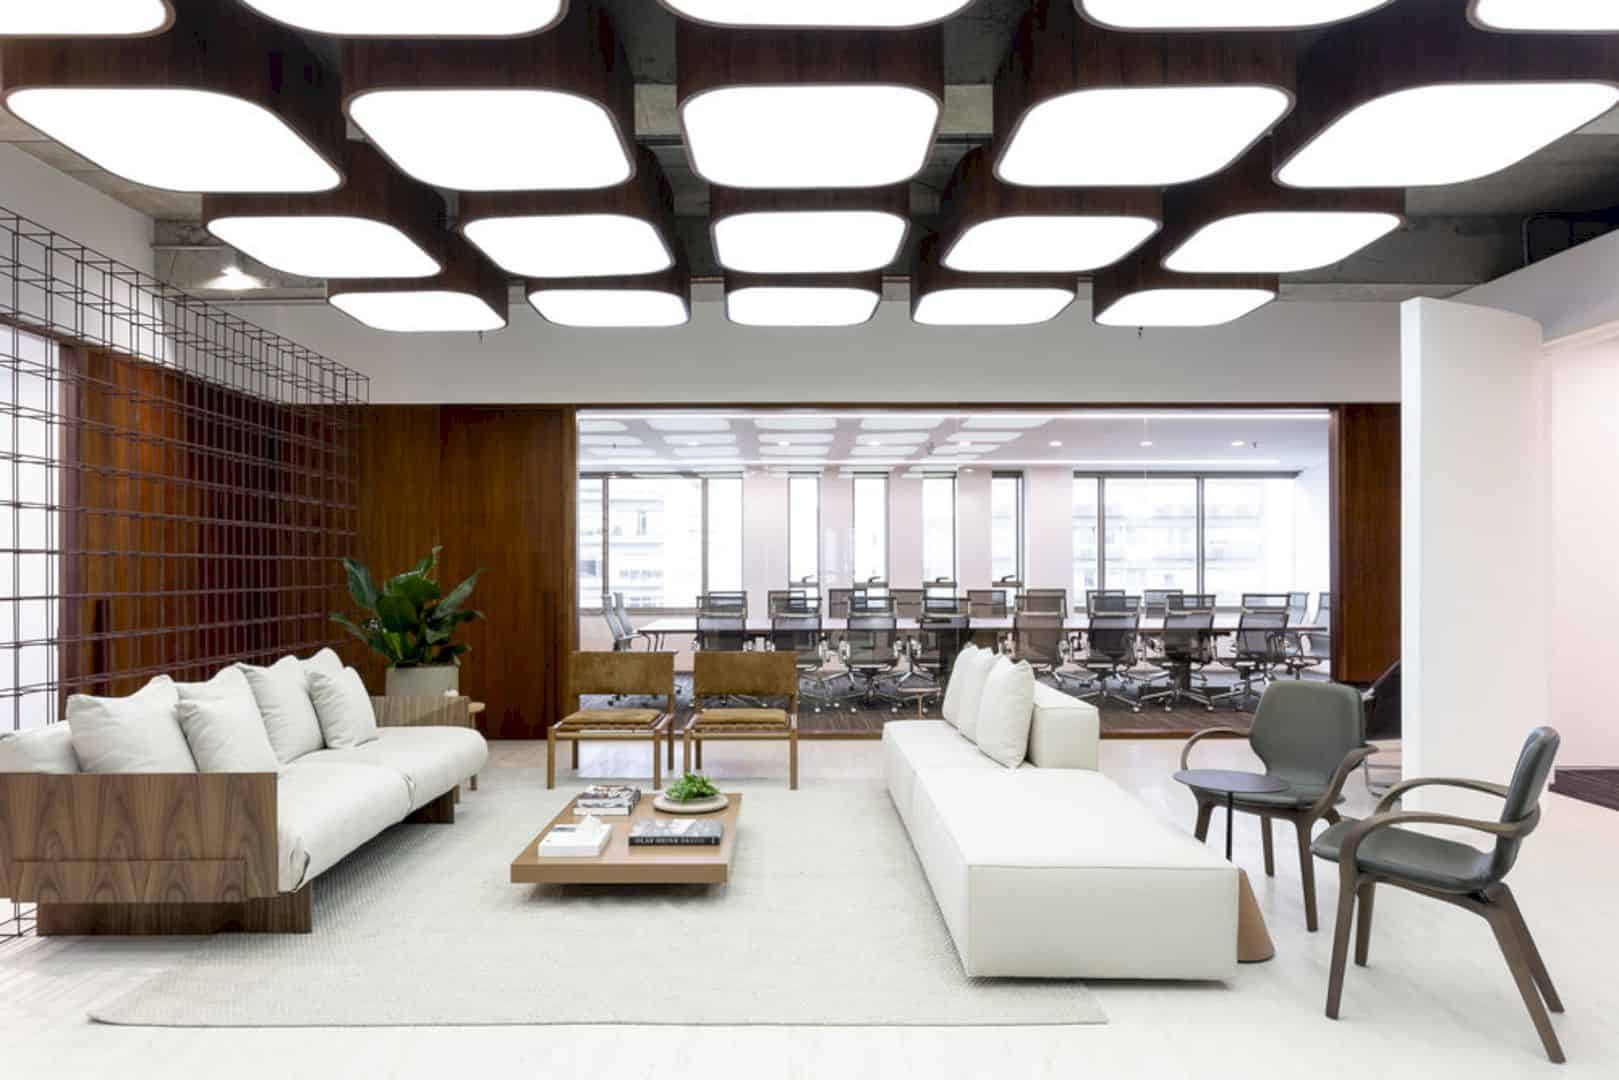 Wrd Office Contemporary Interior Design Of A Law Firm Office With Sensational Environment